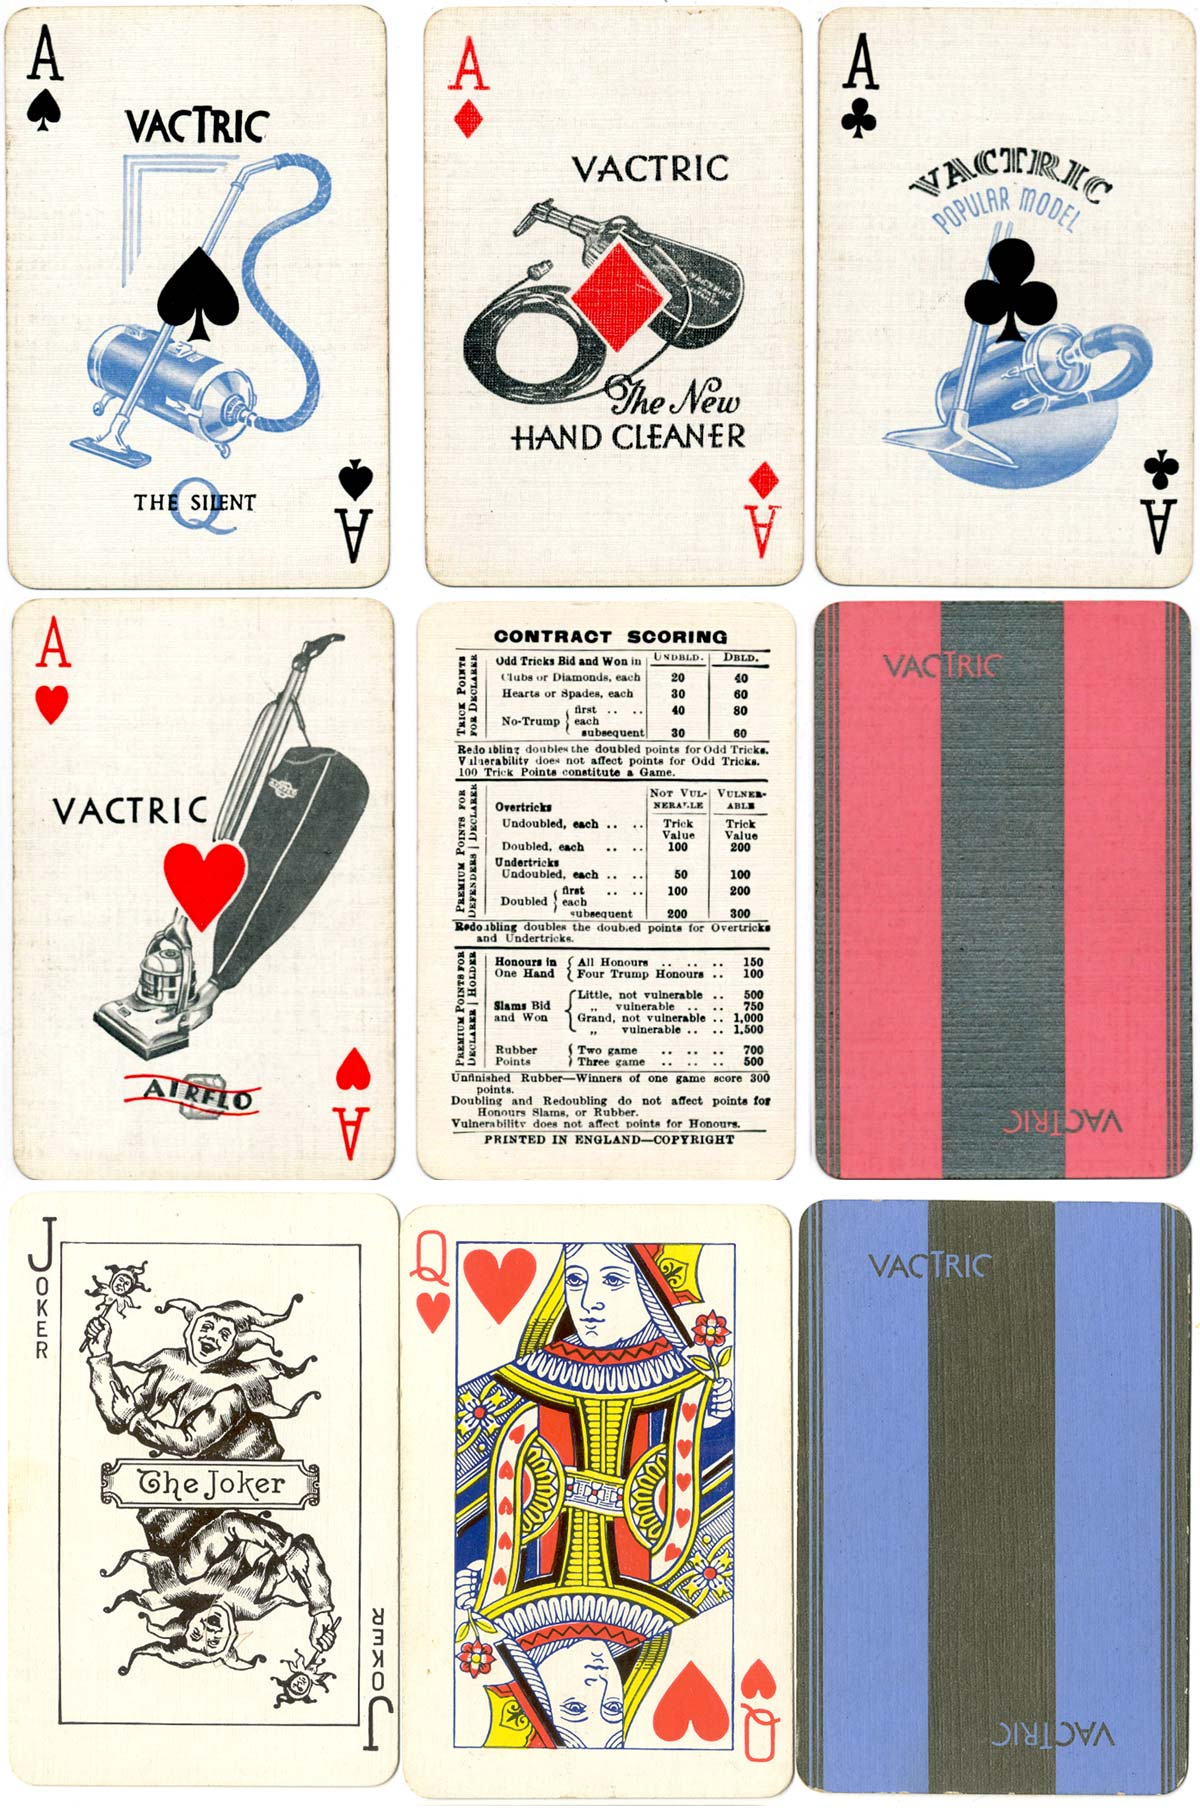 Vac-tric Electric Vacuum Cleaner playing cards manufactured by De la Rue, 1930s